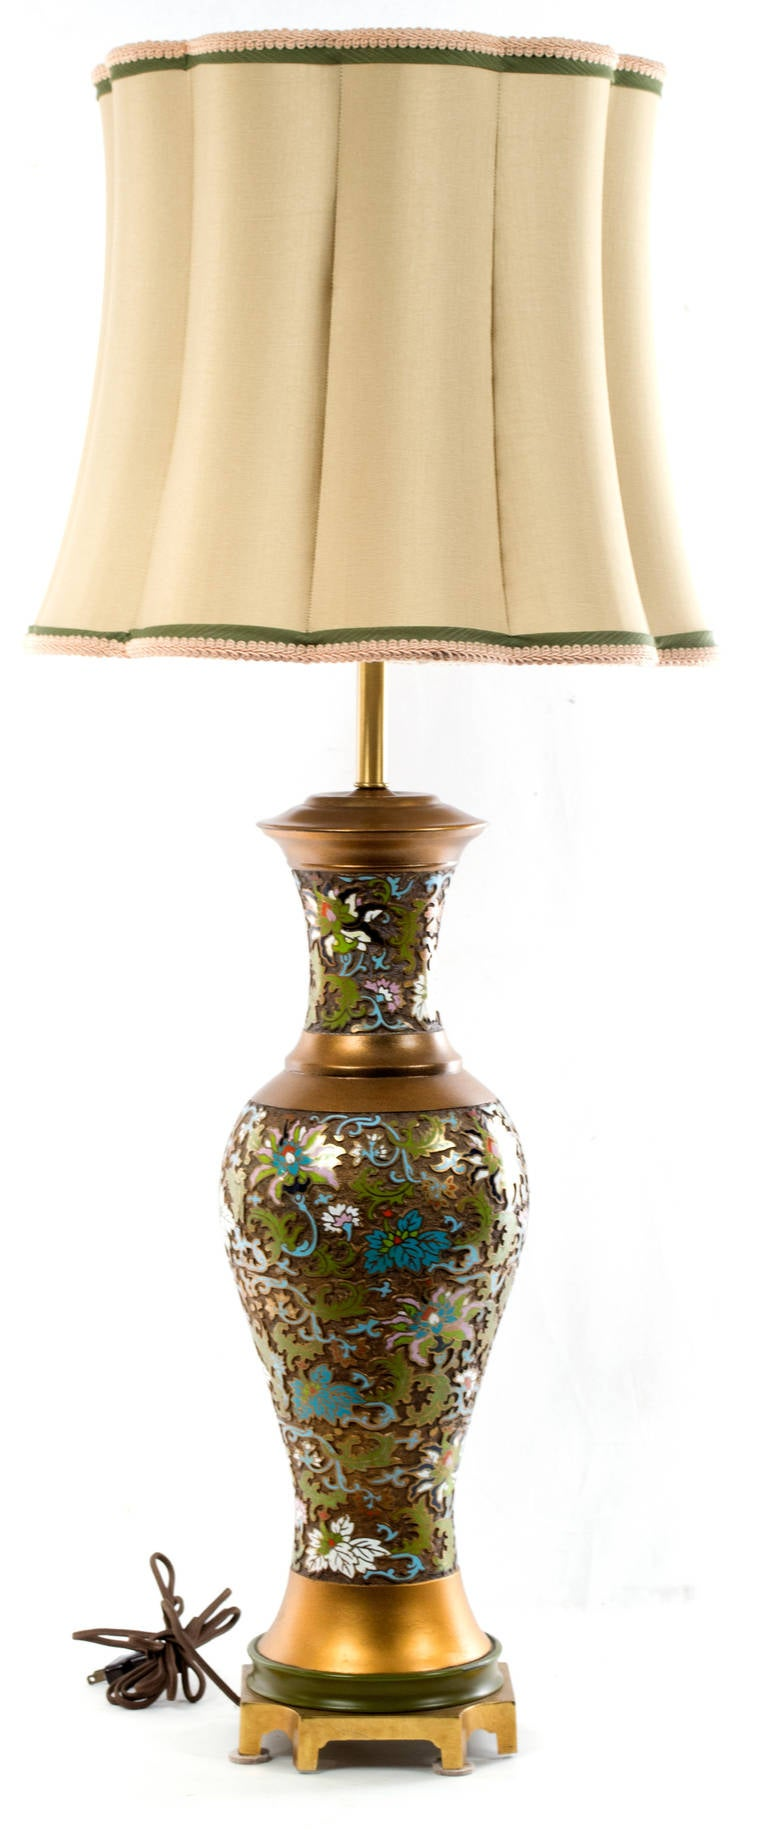 A Gilt Bronze Cloisonné Lamp Topped With An Embroidered Silk Shade, Made In  China During